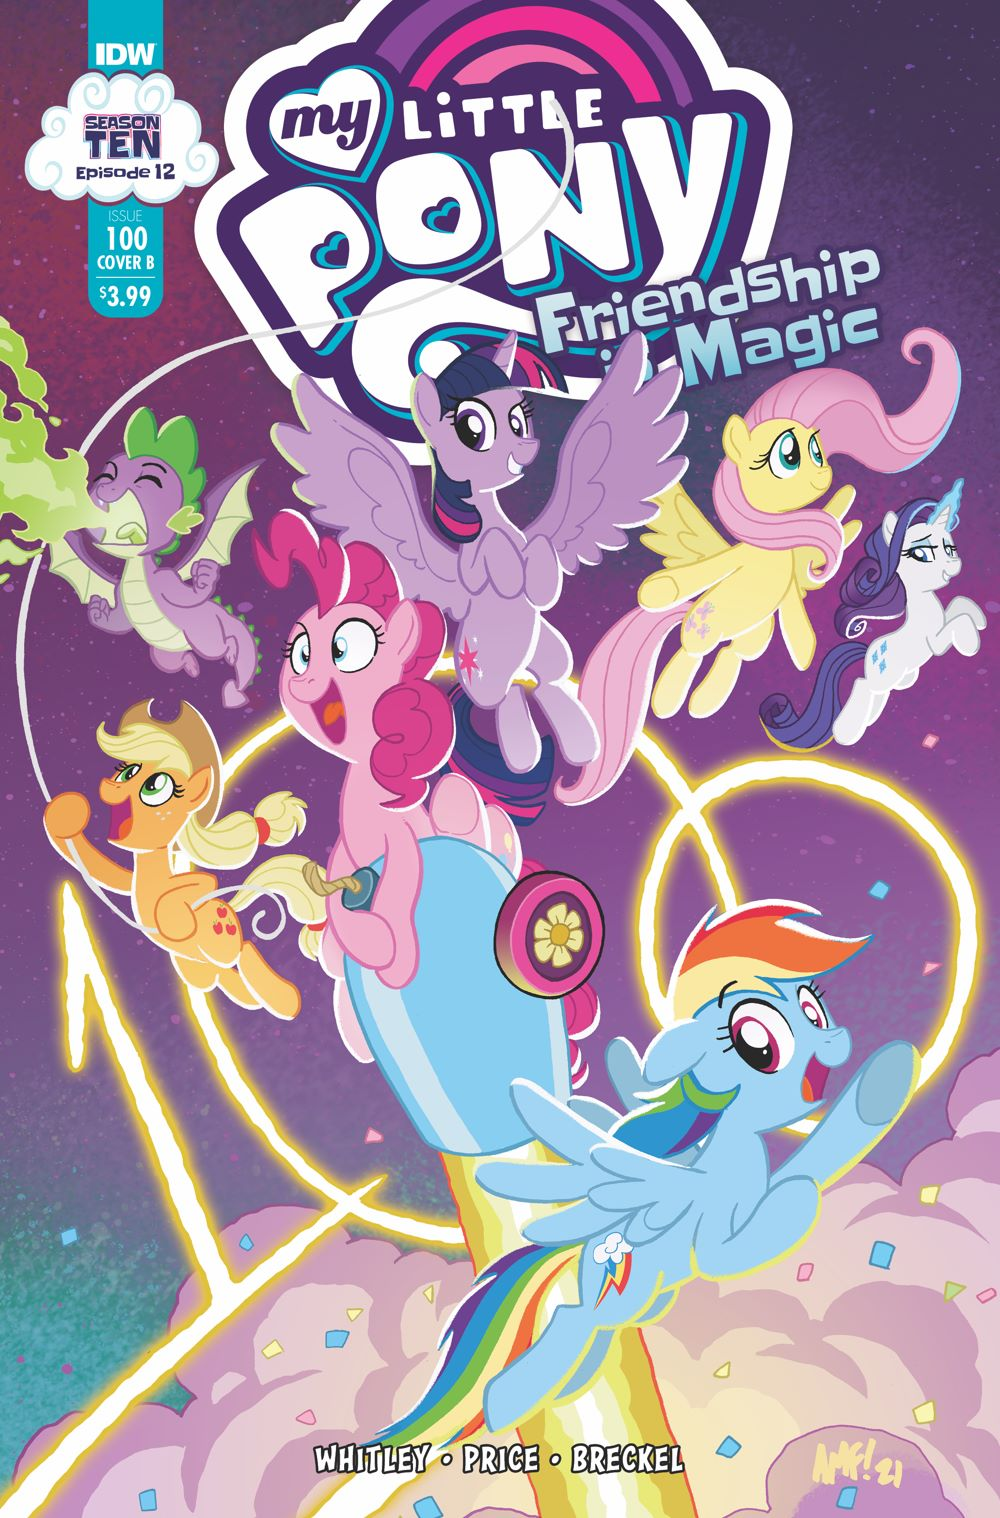 MLP100_12-coverB ComicList Previews: MY LITTLE PONY FRIENDSHIP IS MAGIC #100